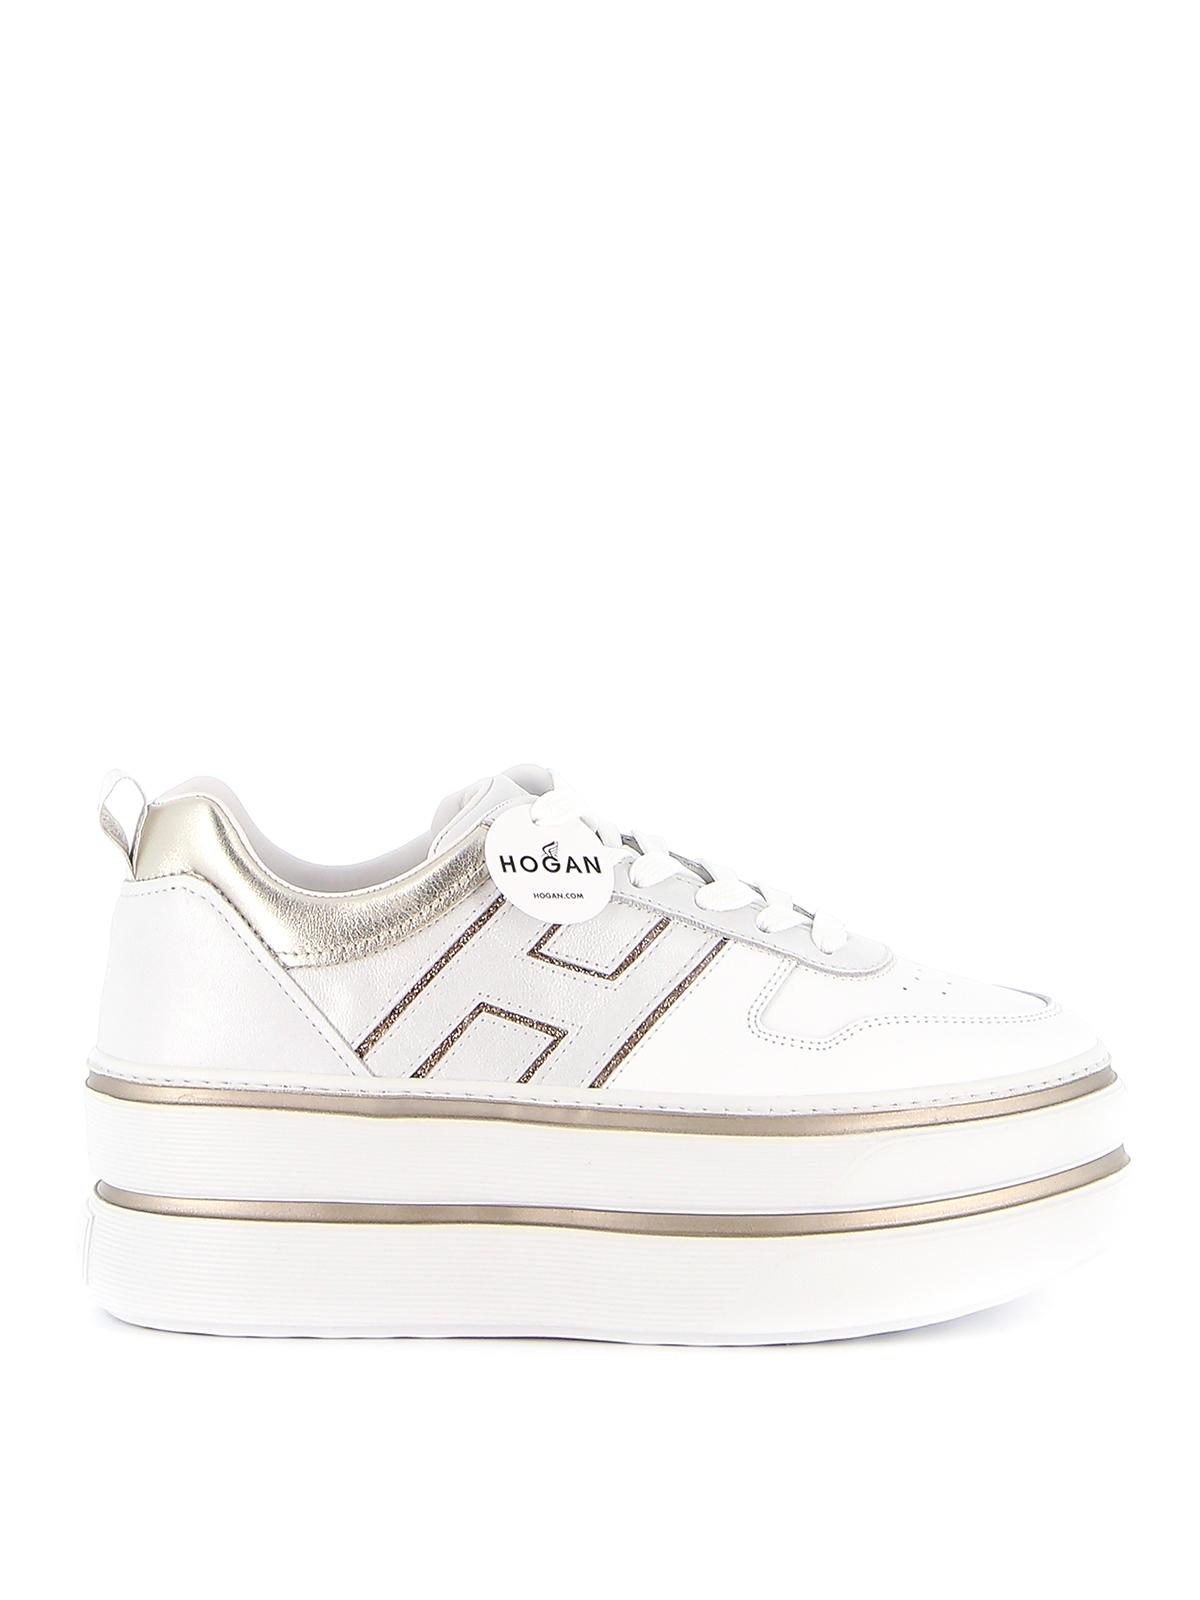 Trainers Hogan - Maxi H449 leather sneakers - HXW4490CO10N6A1556